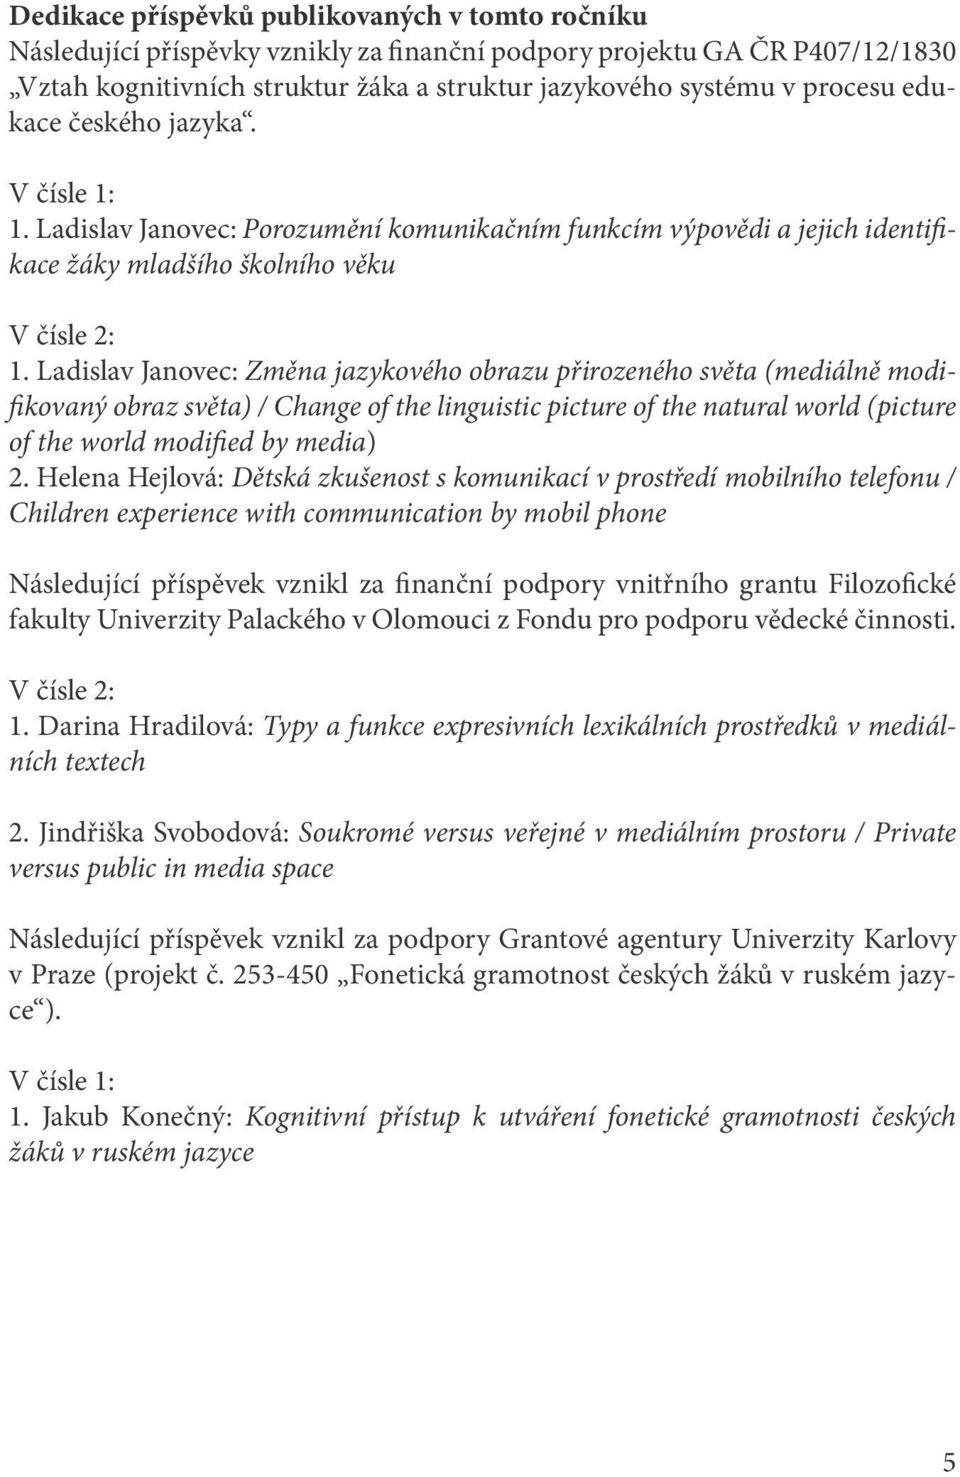 Ladislav Janovec: Změna jazykového obrazu přirozeného světa (mediálně modifikovaný obraz světa) / Change of the linguistic picture of the natural world (picture of the world modified by media) 2.